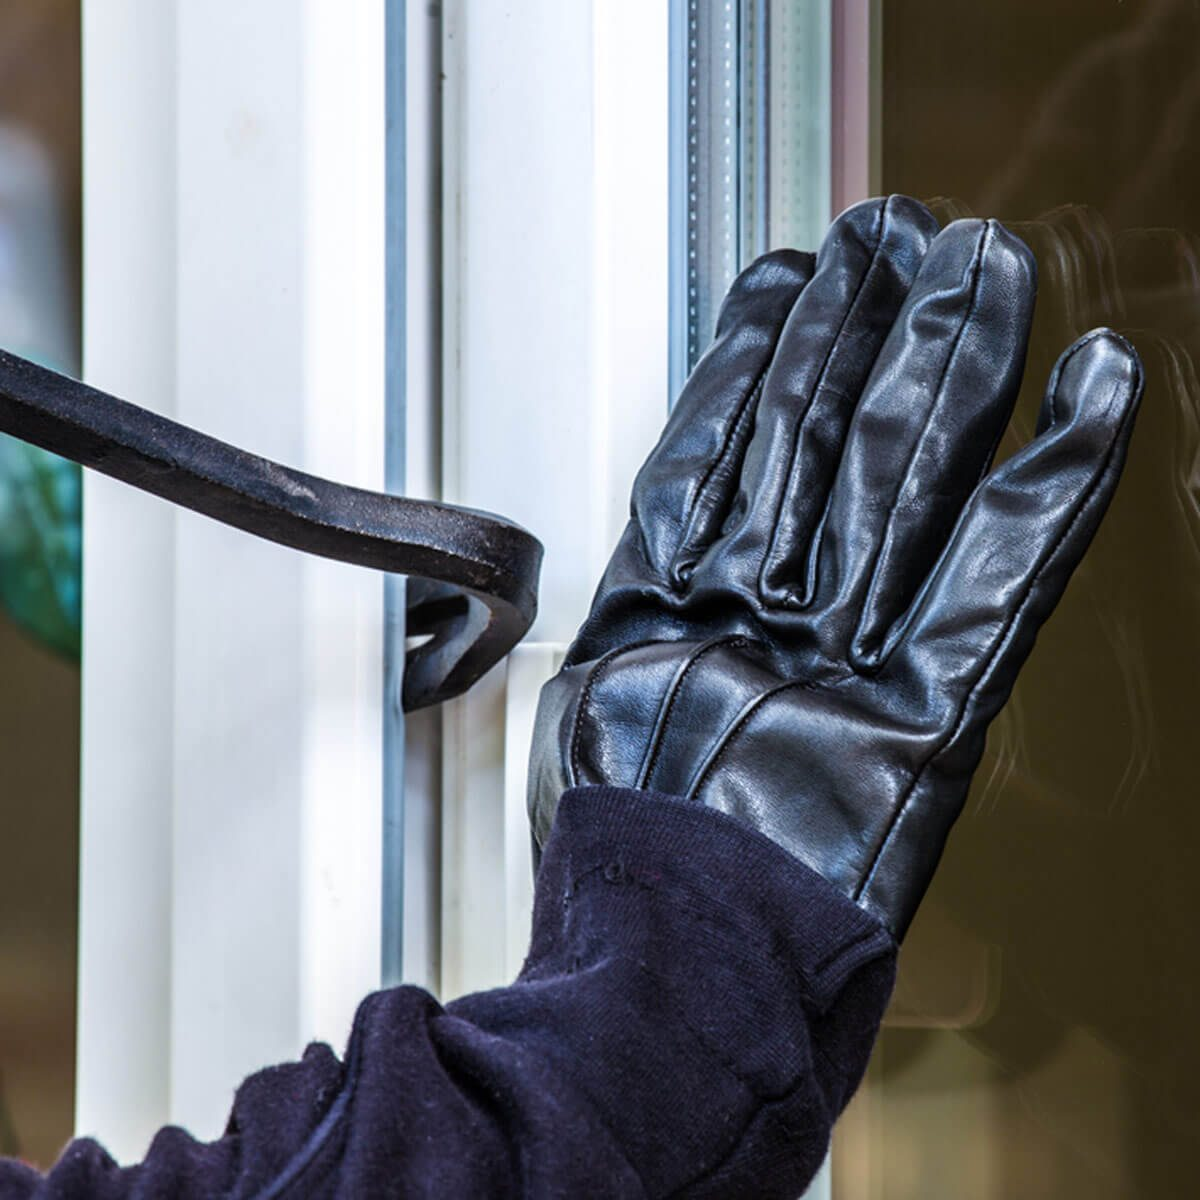 Burglar Alarms vs. Home Security Systems